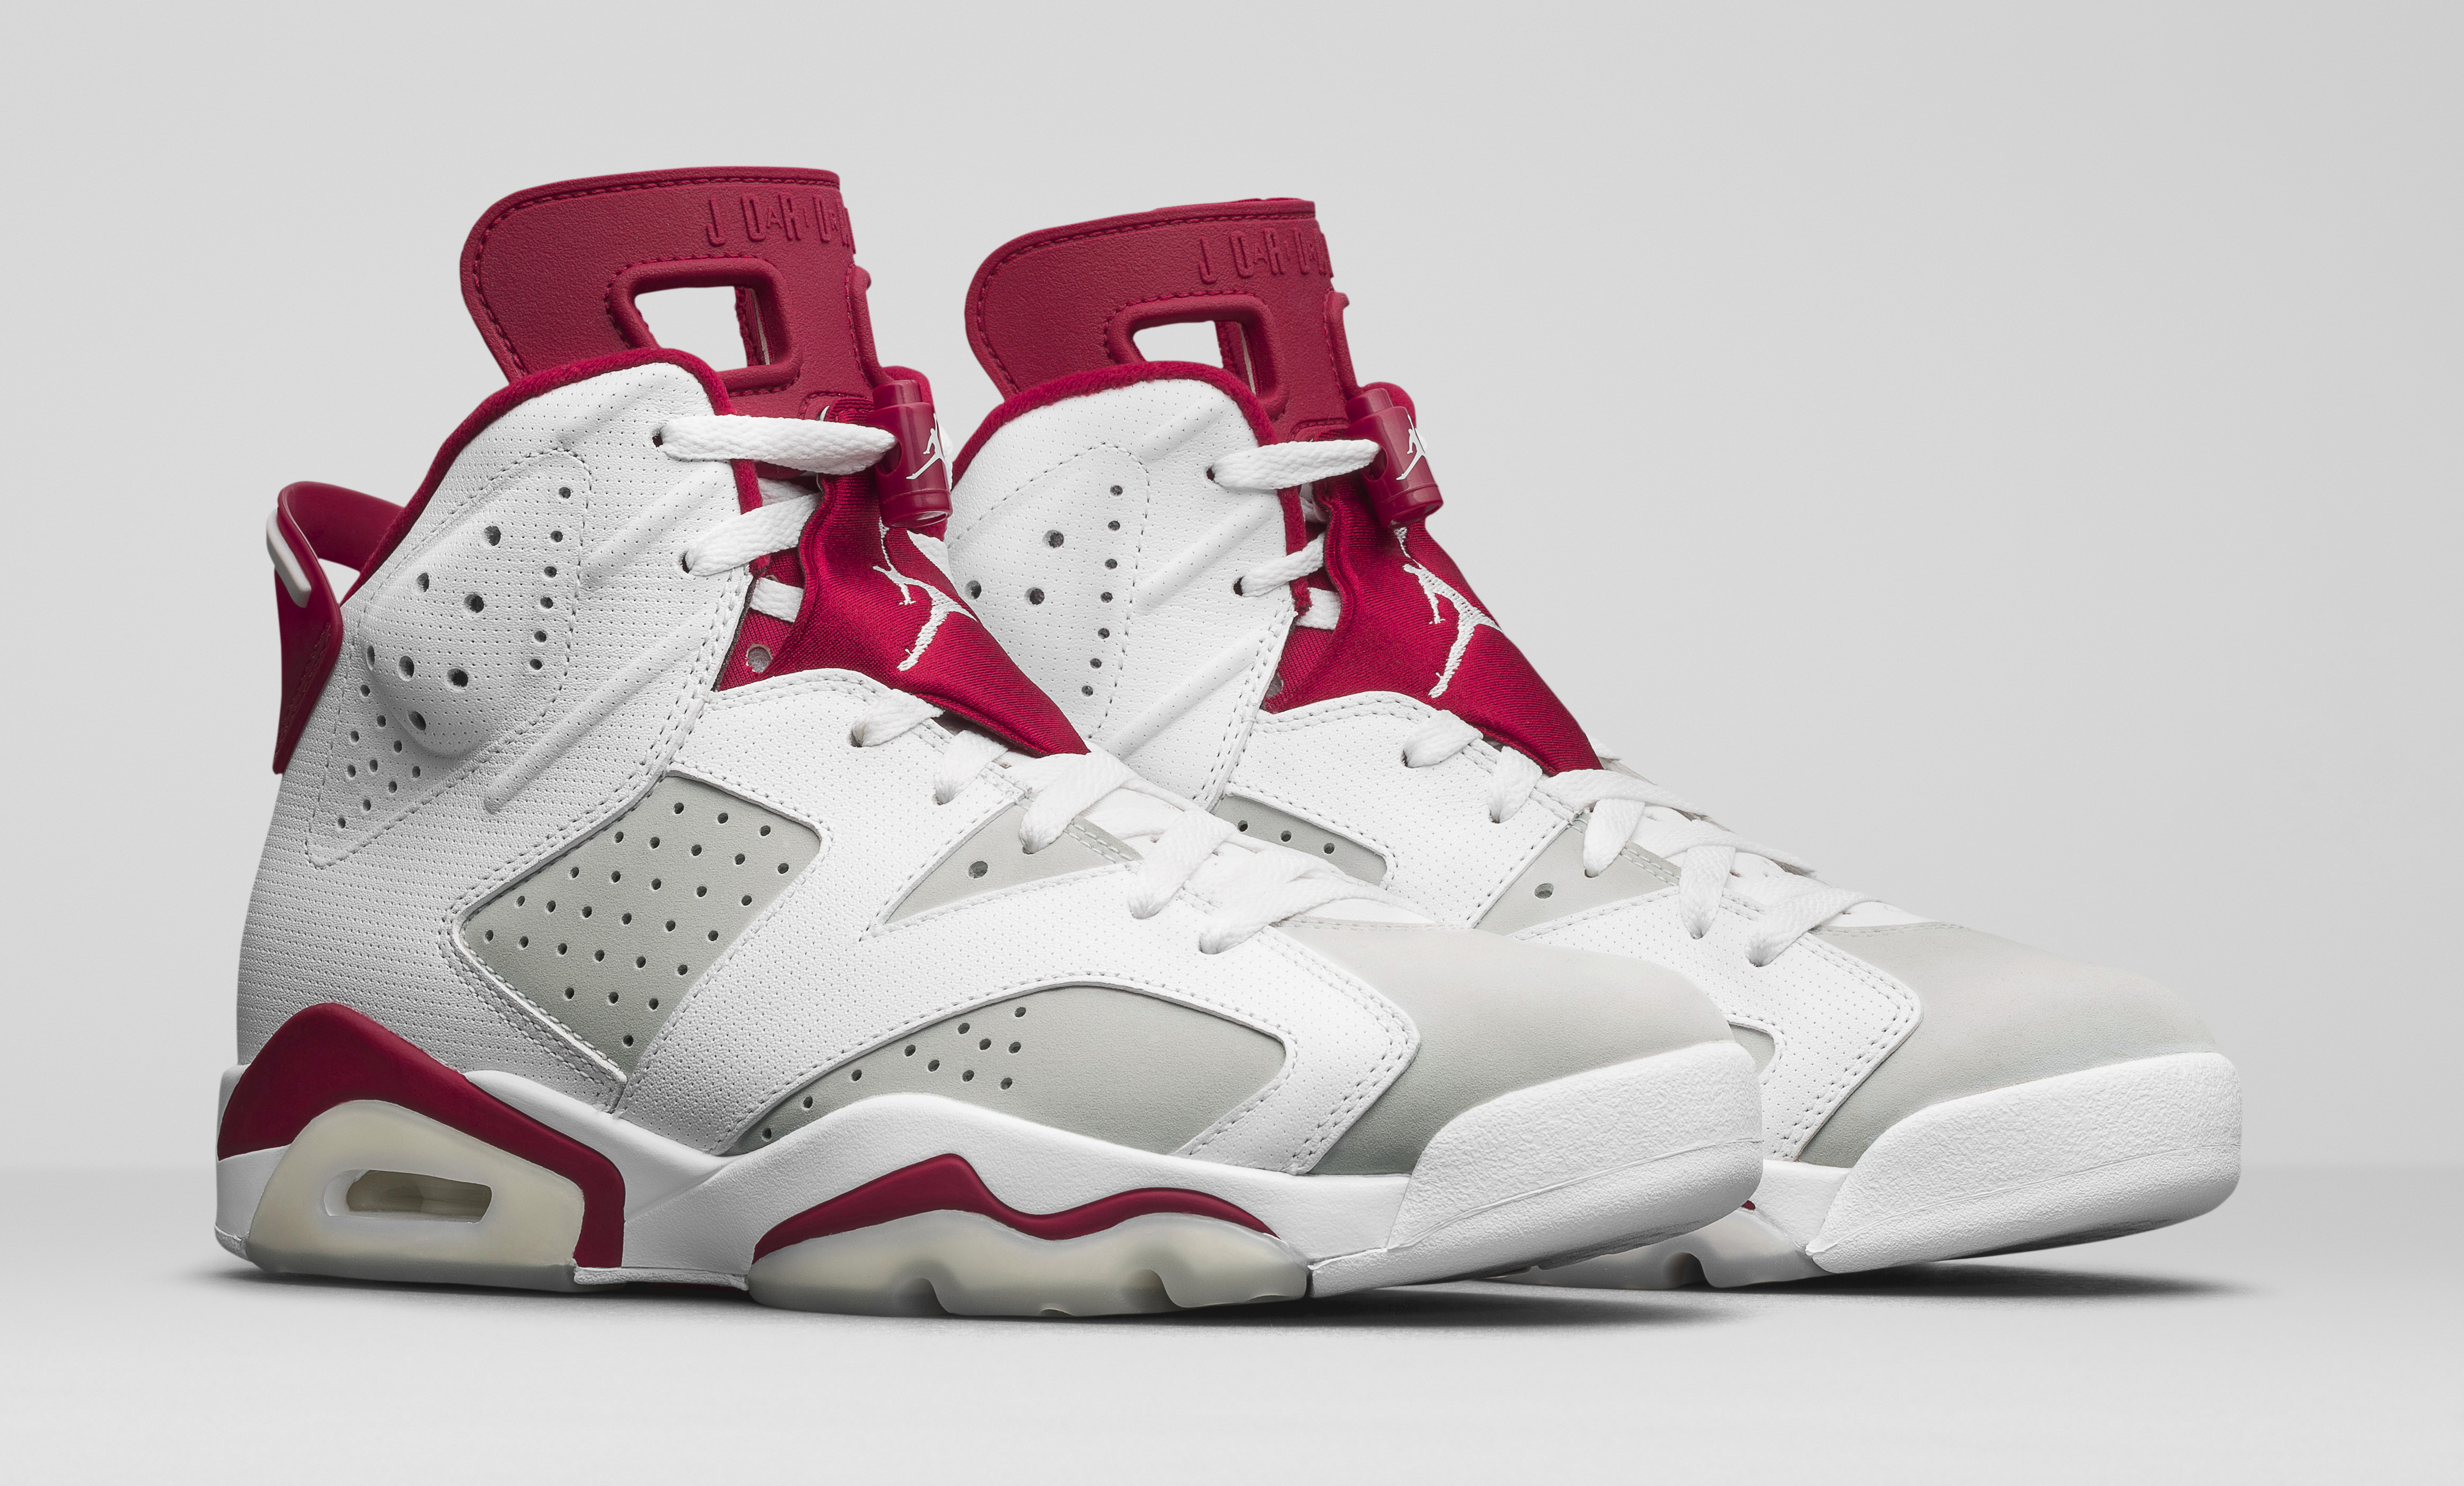 92a2edddcb27  Alternate  Air Jordan 6s Will Release on March 11